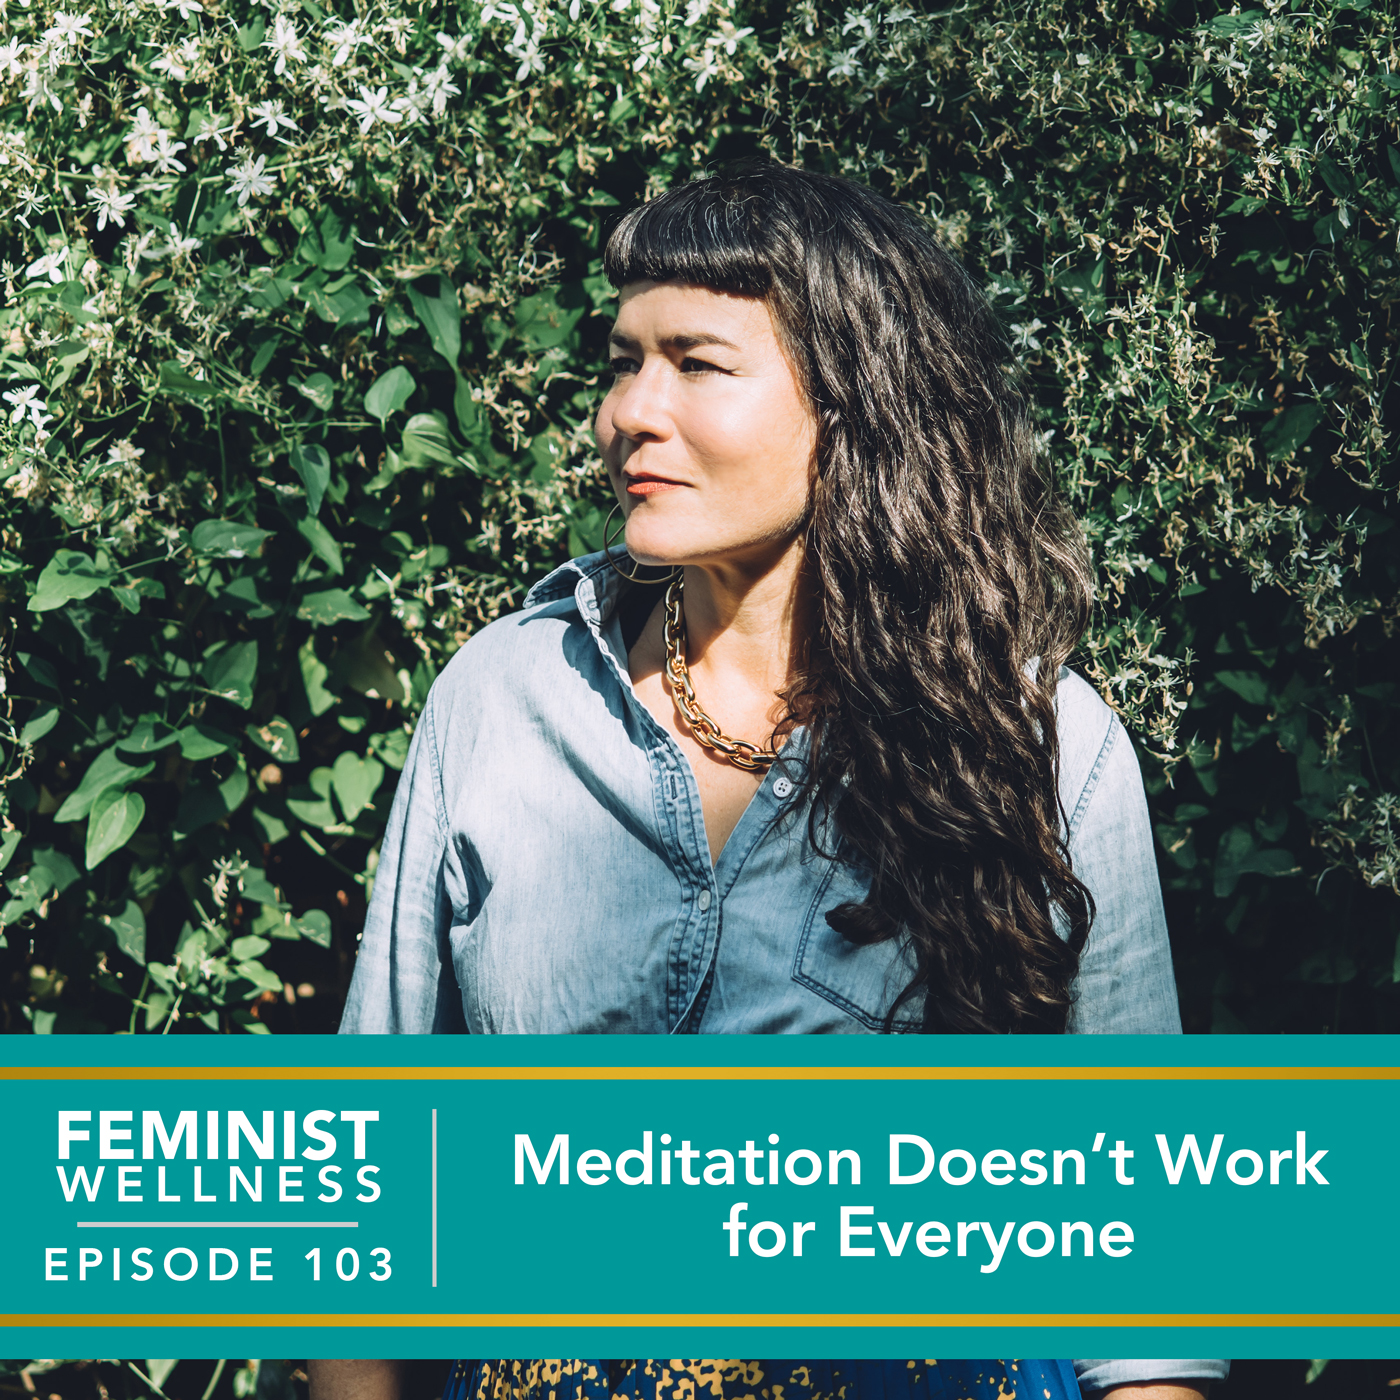 Meditation Doesn't Work for Everyone